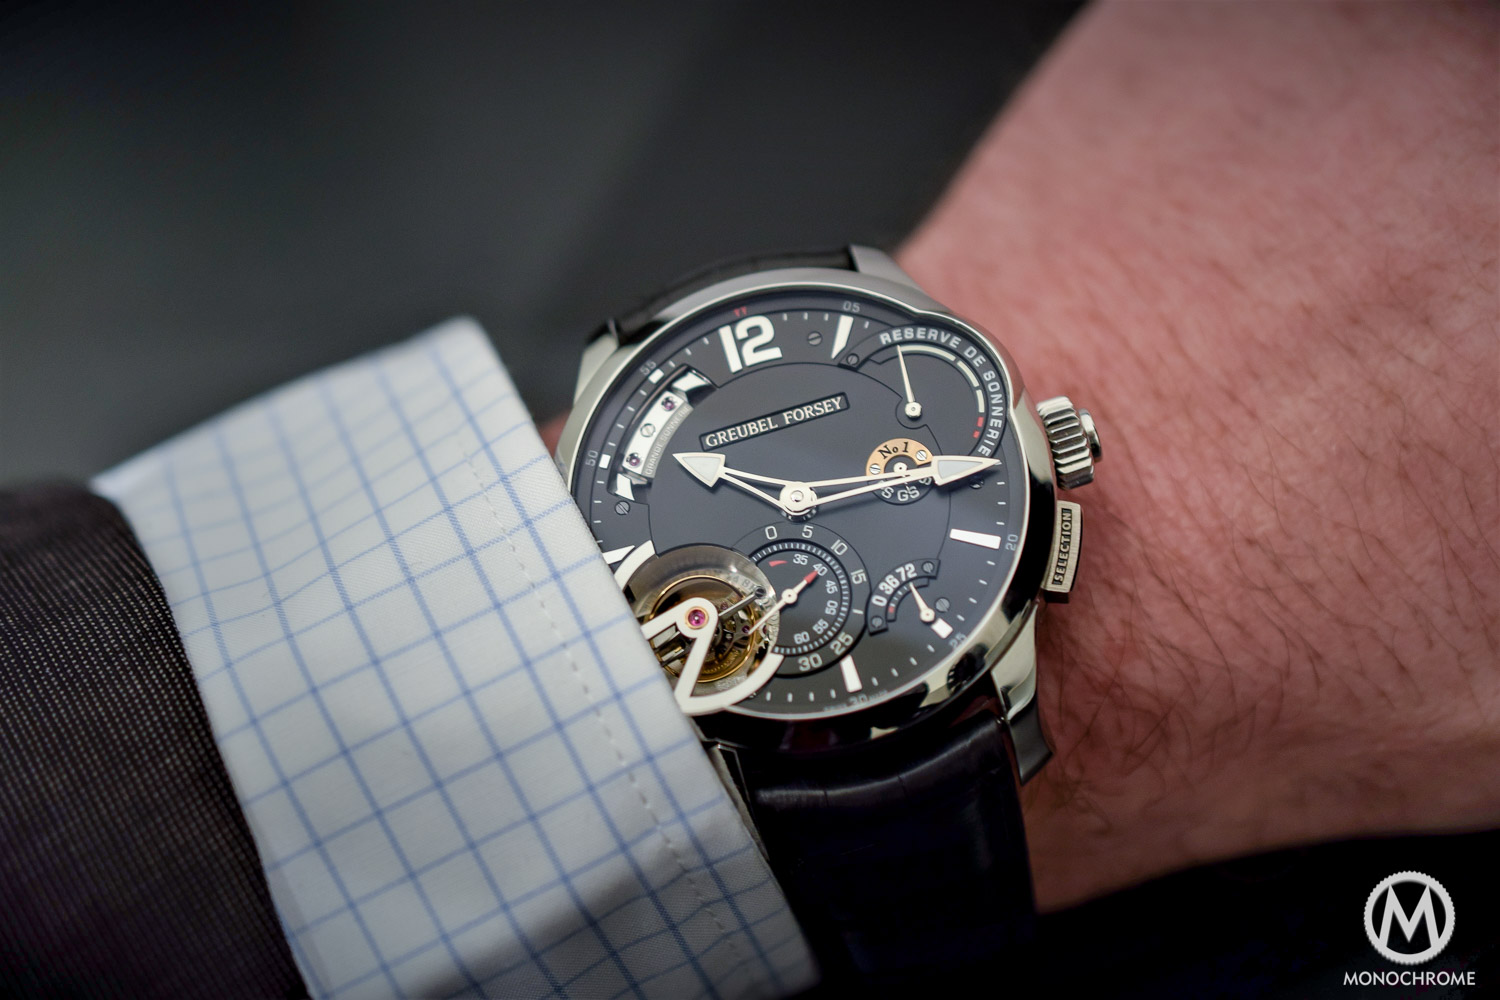 Greubel Forsey Grande Sonnerie - SIHH 2017 Review (Specs & Price)